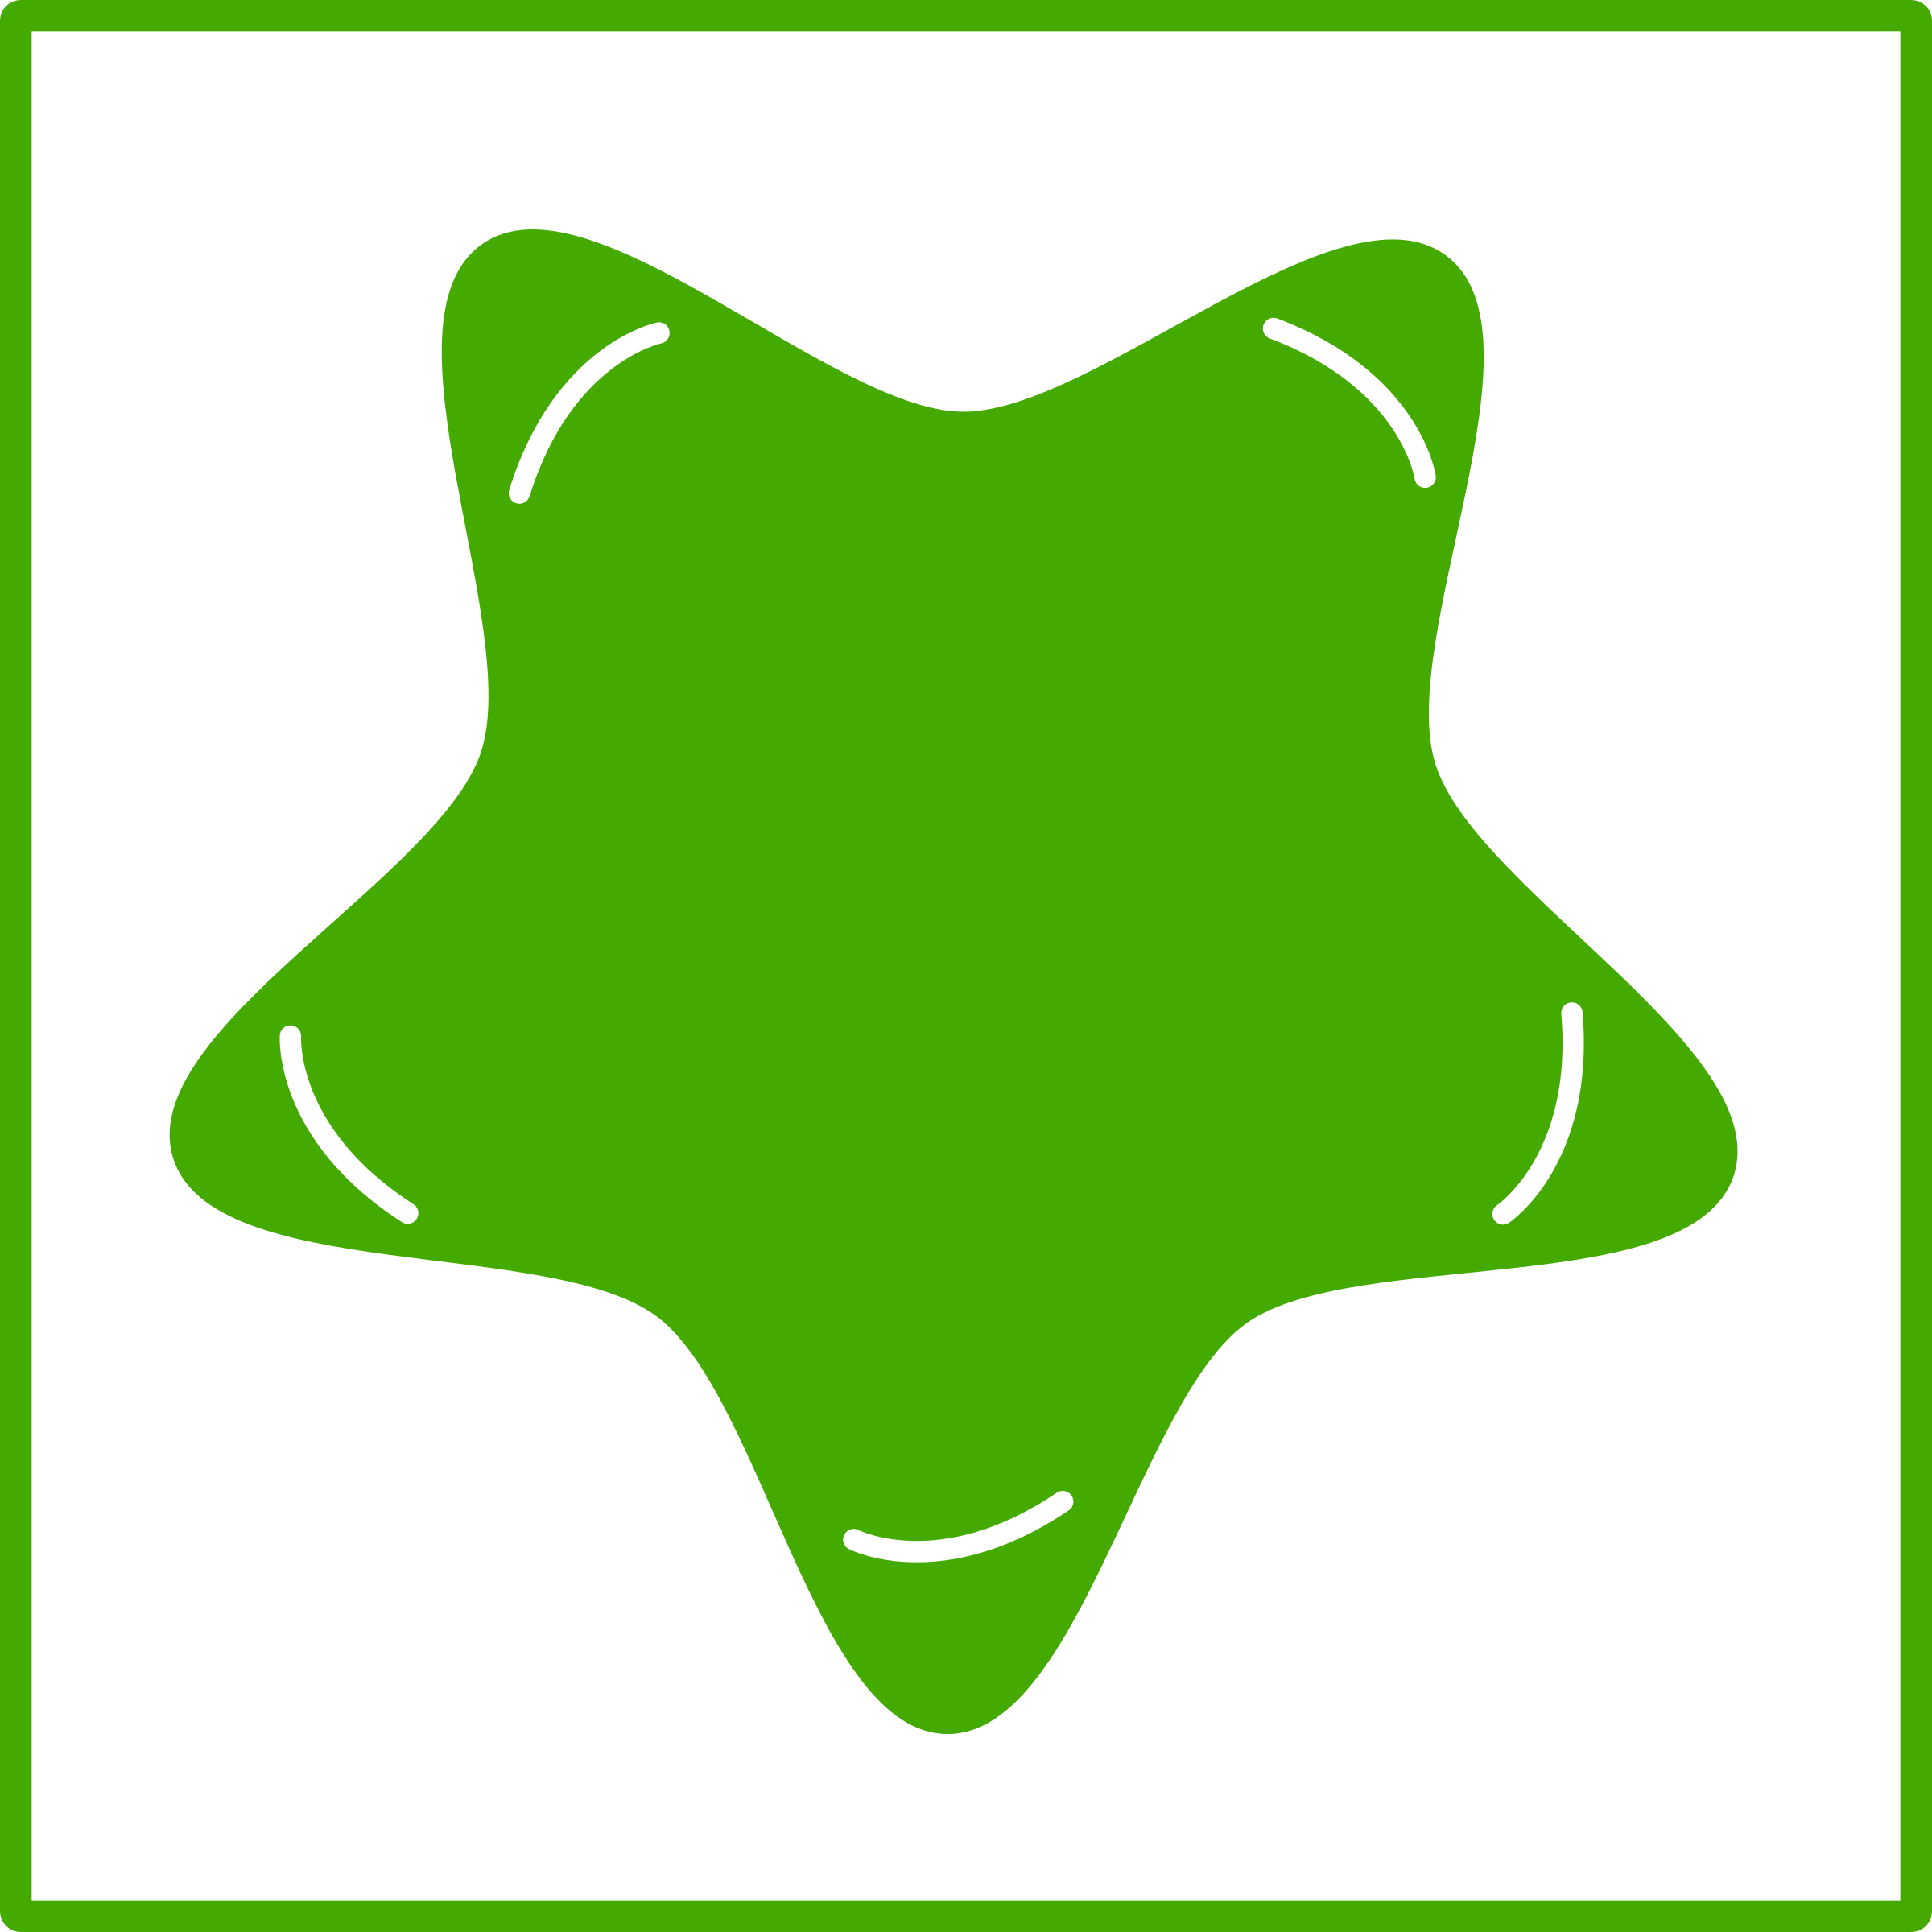 eco green star icon by dominiquechappard